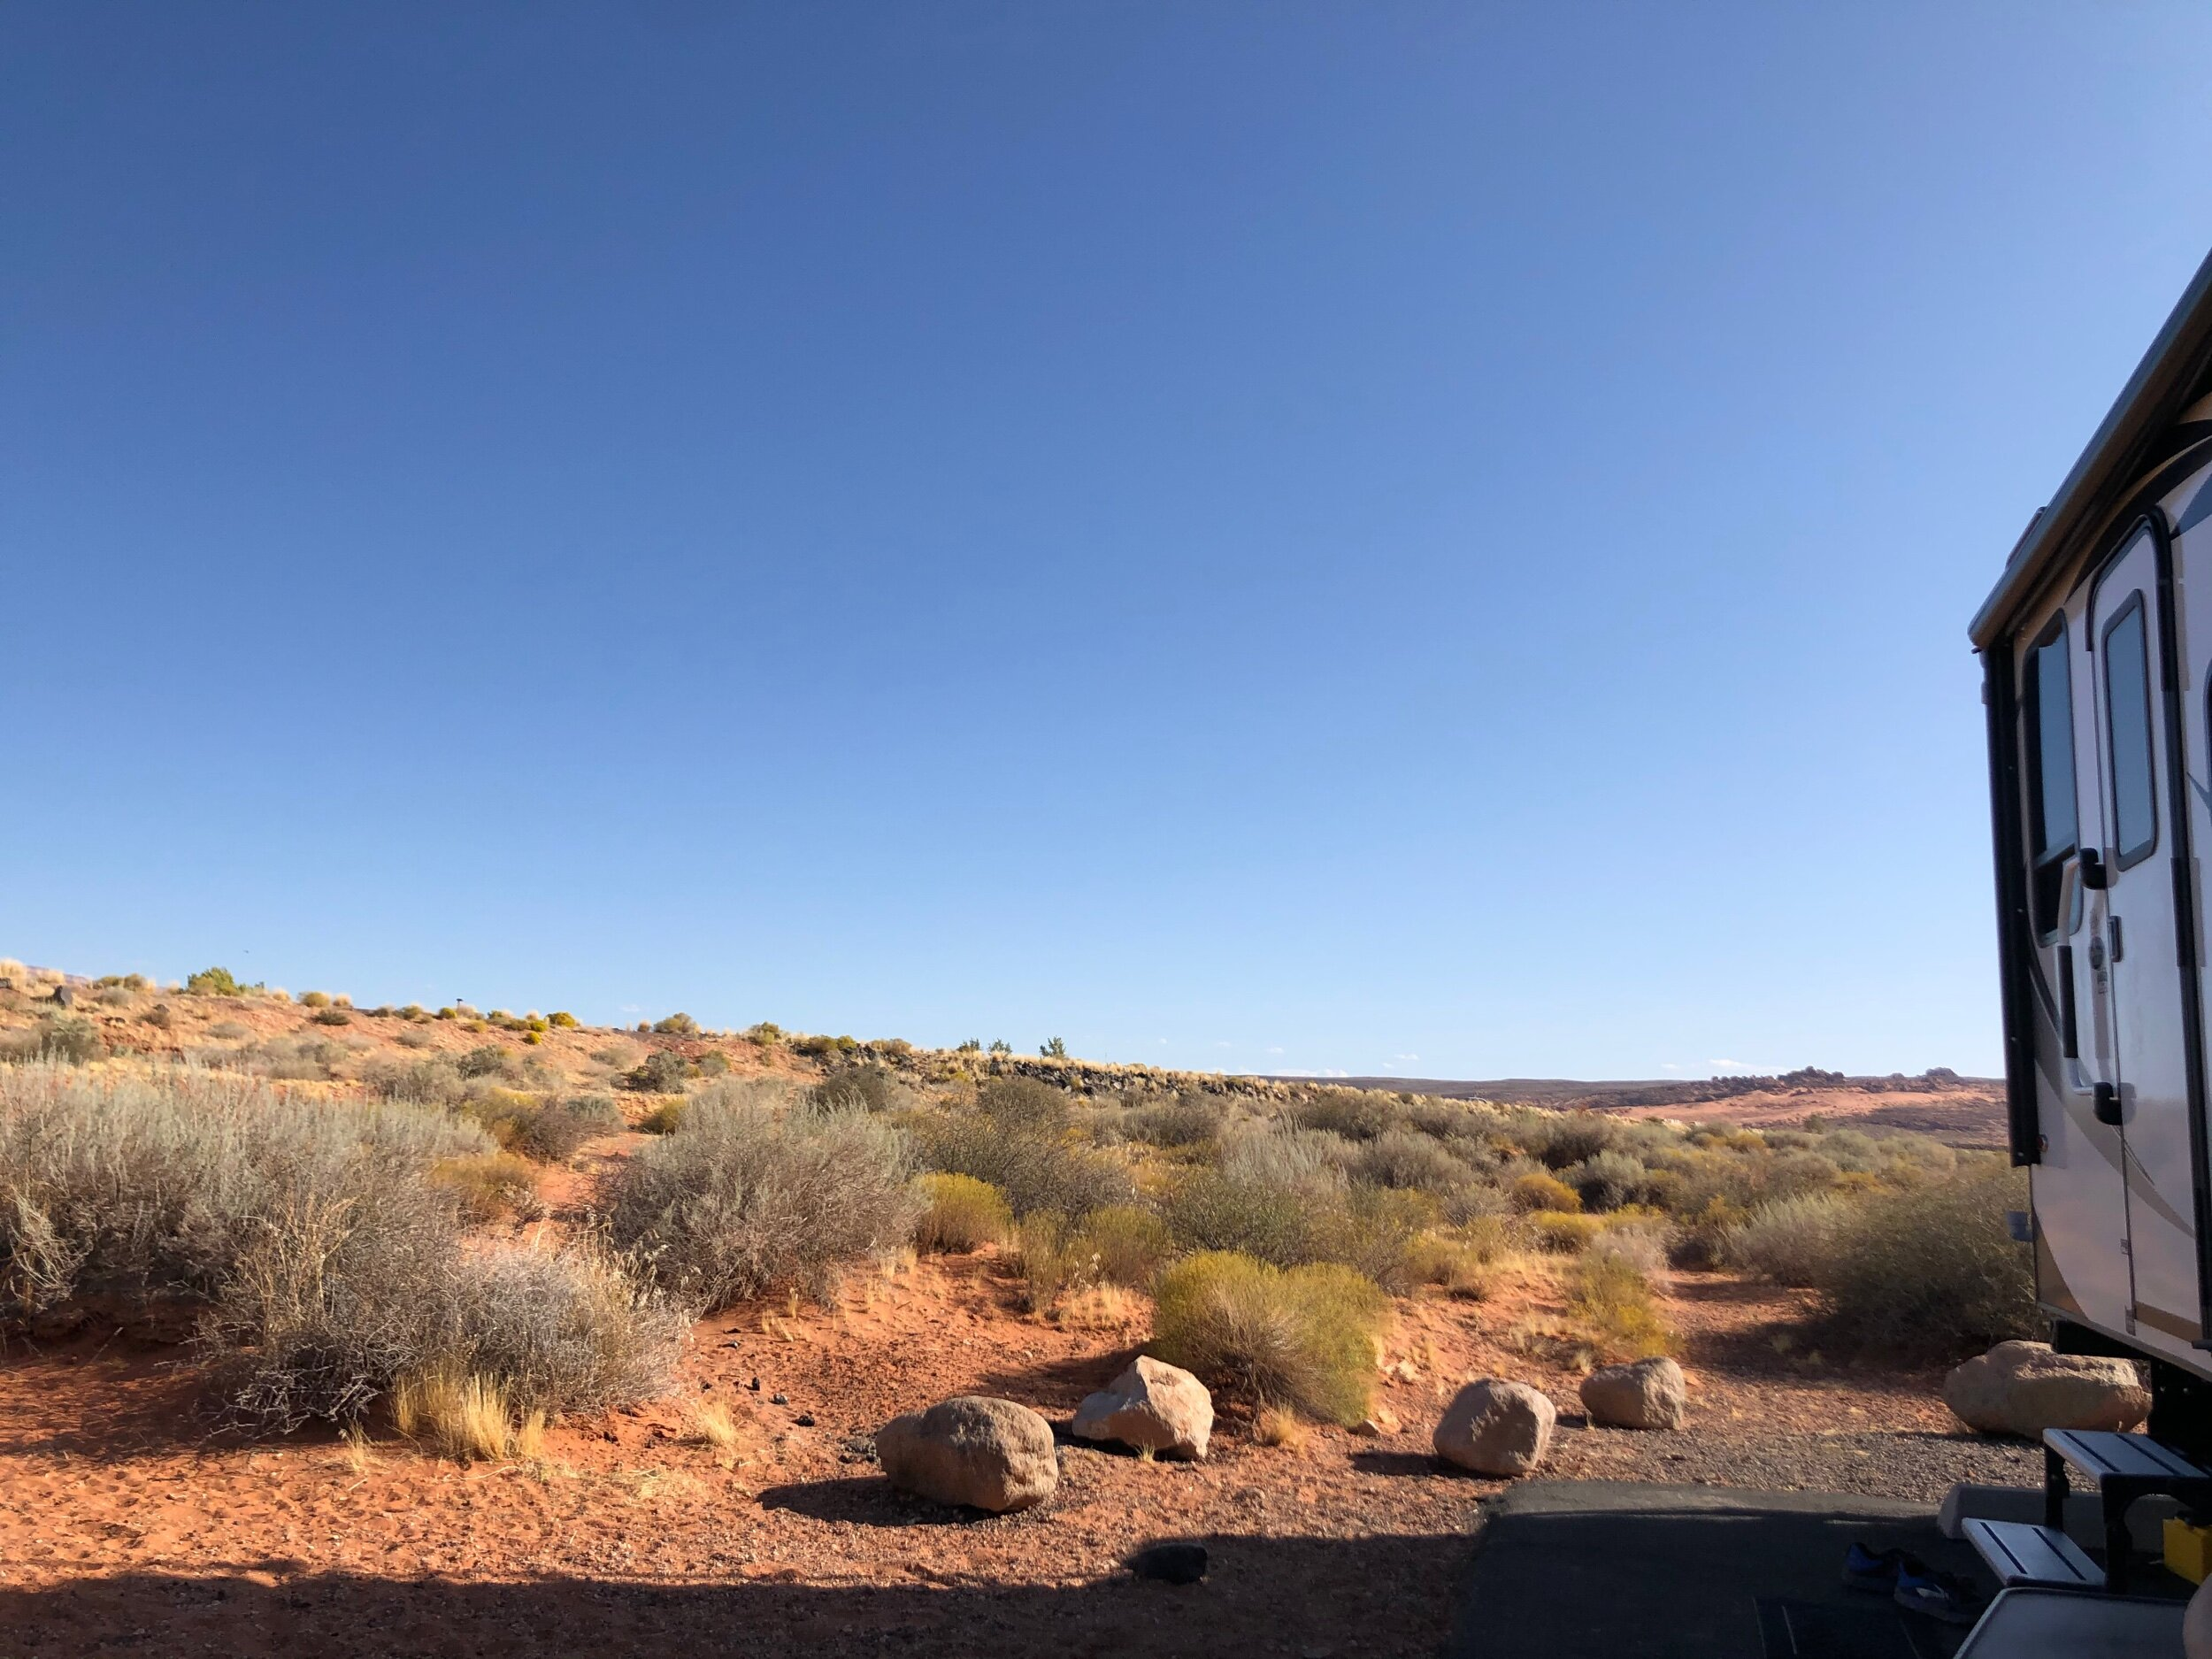 View from our site in Sand Hollow.